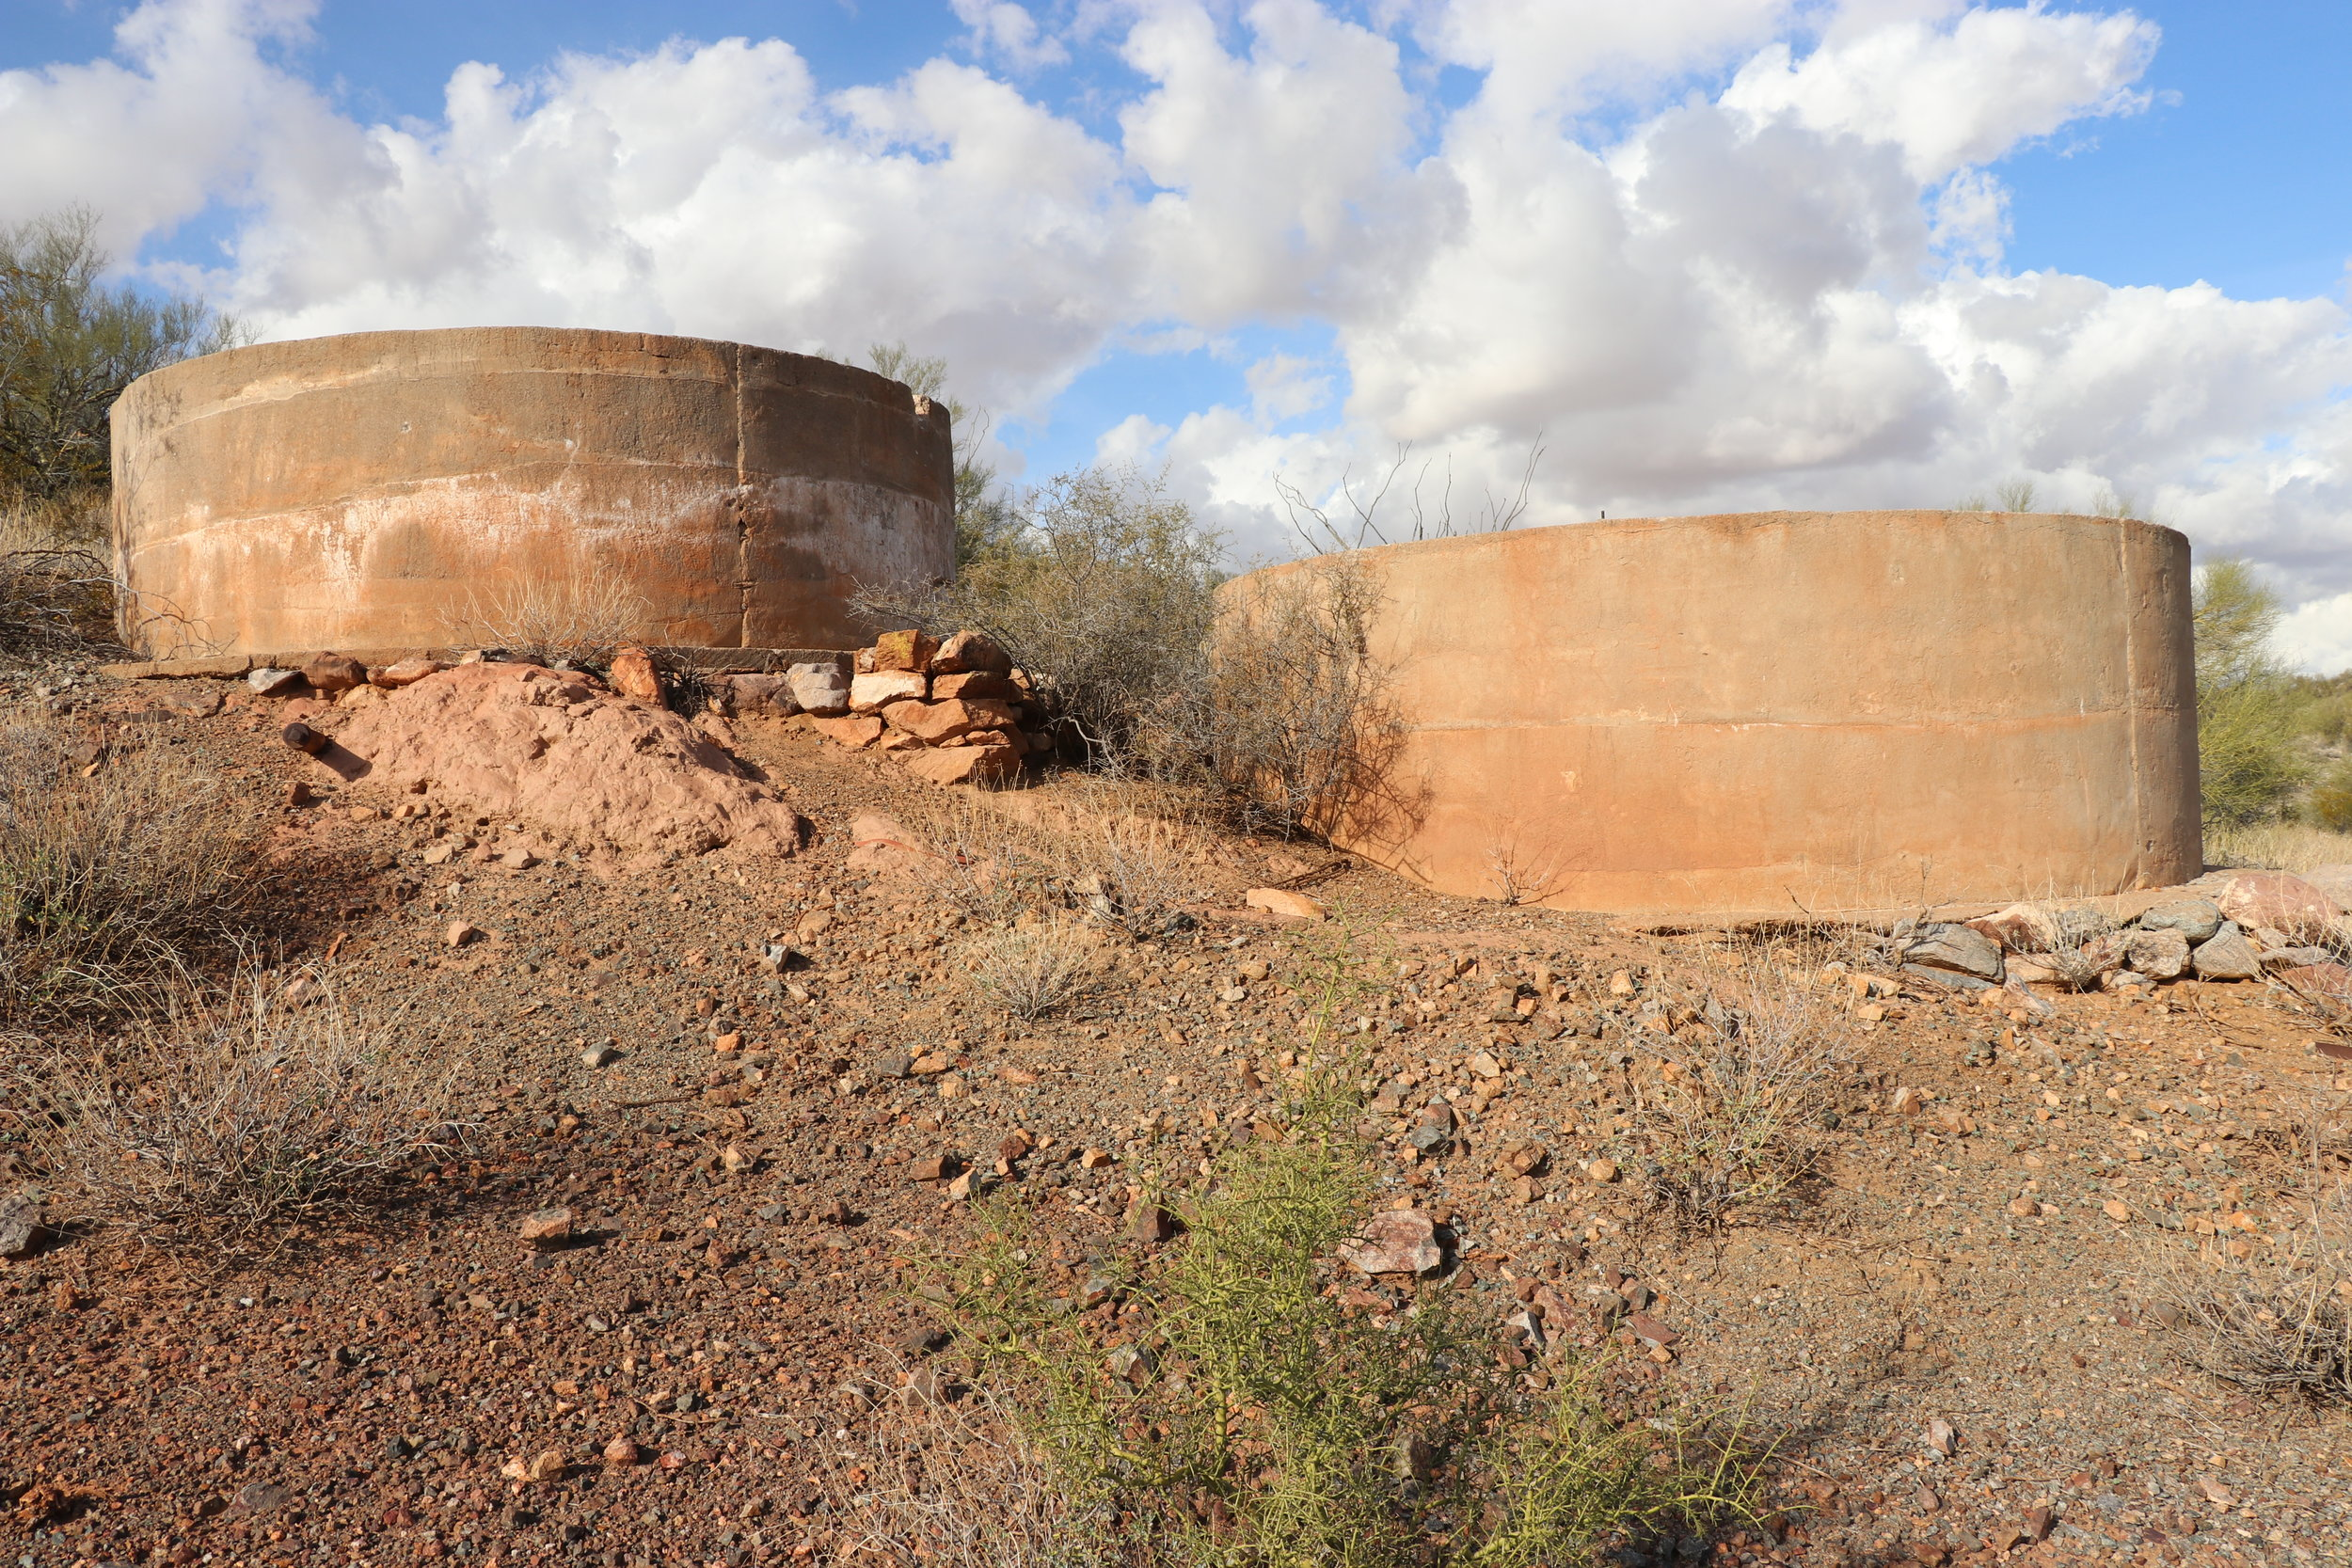 Several water tanks remain perched above the mill site.